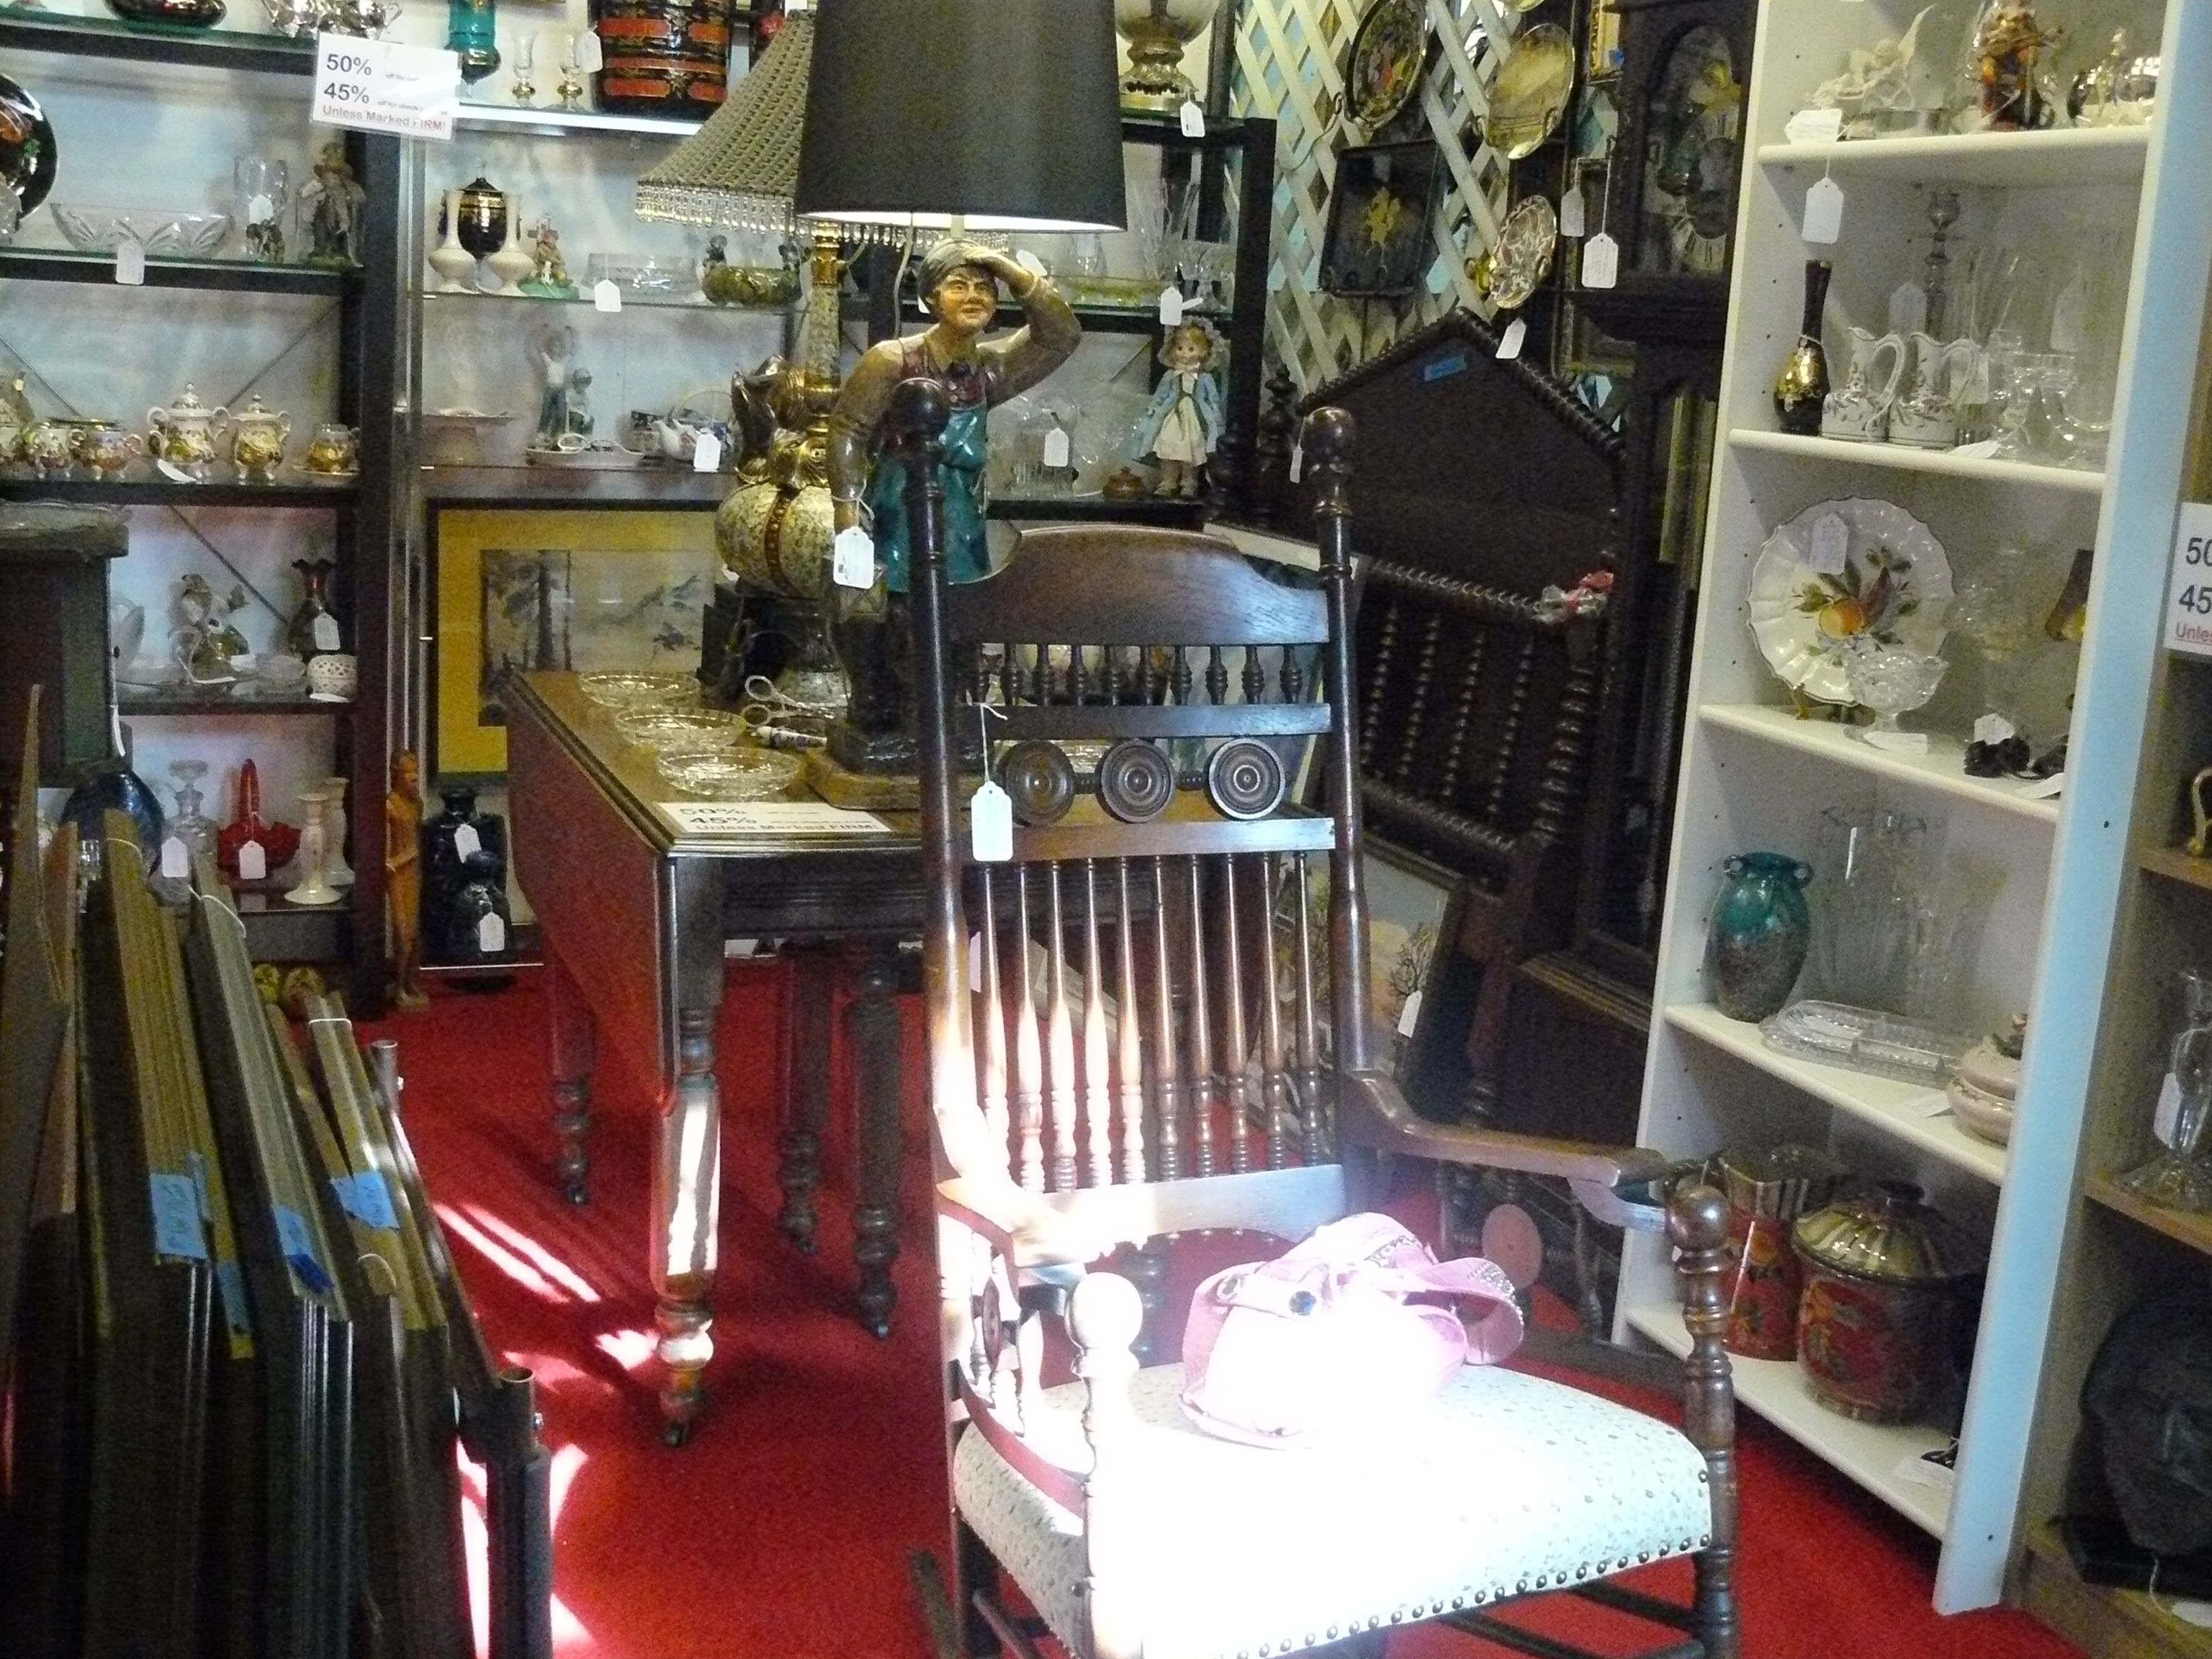 Rent A Booth At Scranberry Coop Andover NJ, Sell Antique Vintage  Collectible Artisan Wares